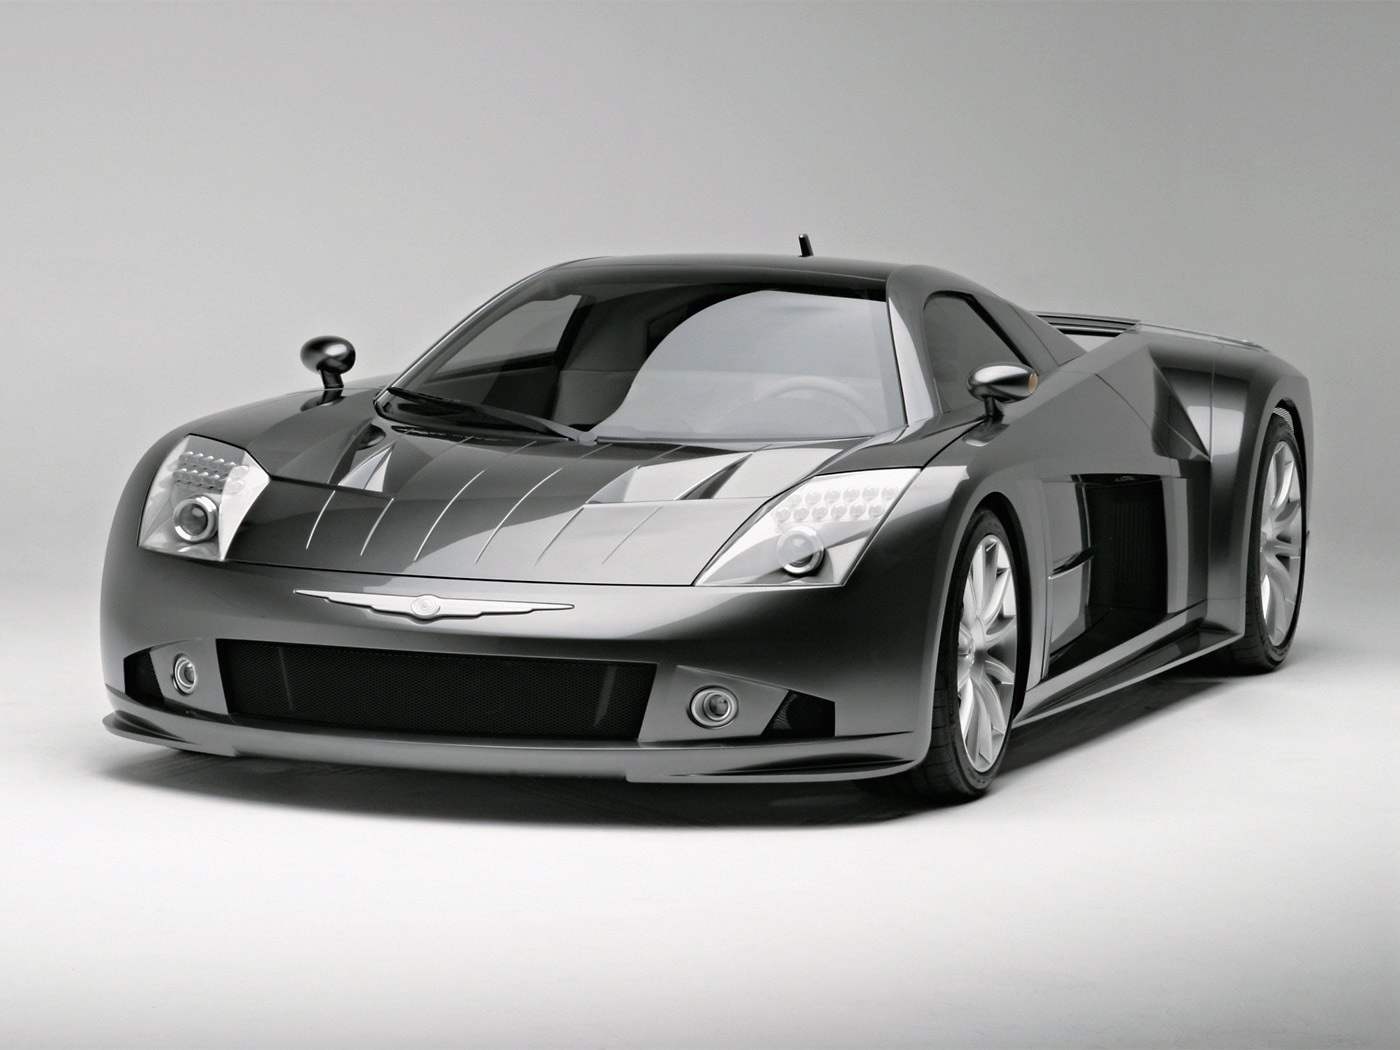 Cars Wallpapers And Pictures Car Images,car Pics,carPicture